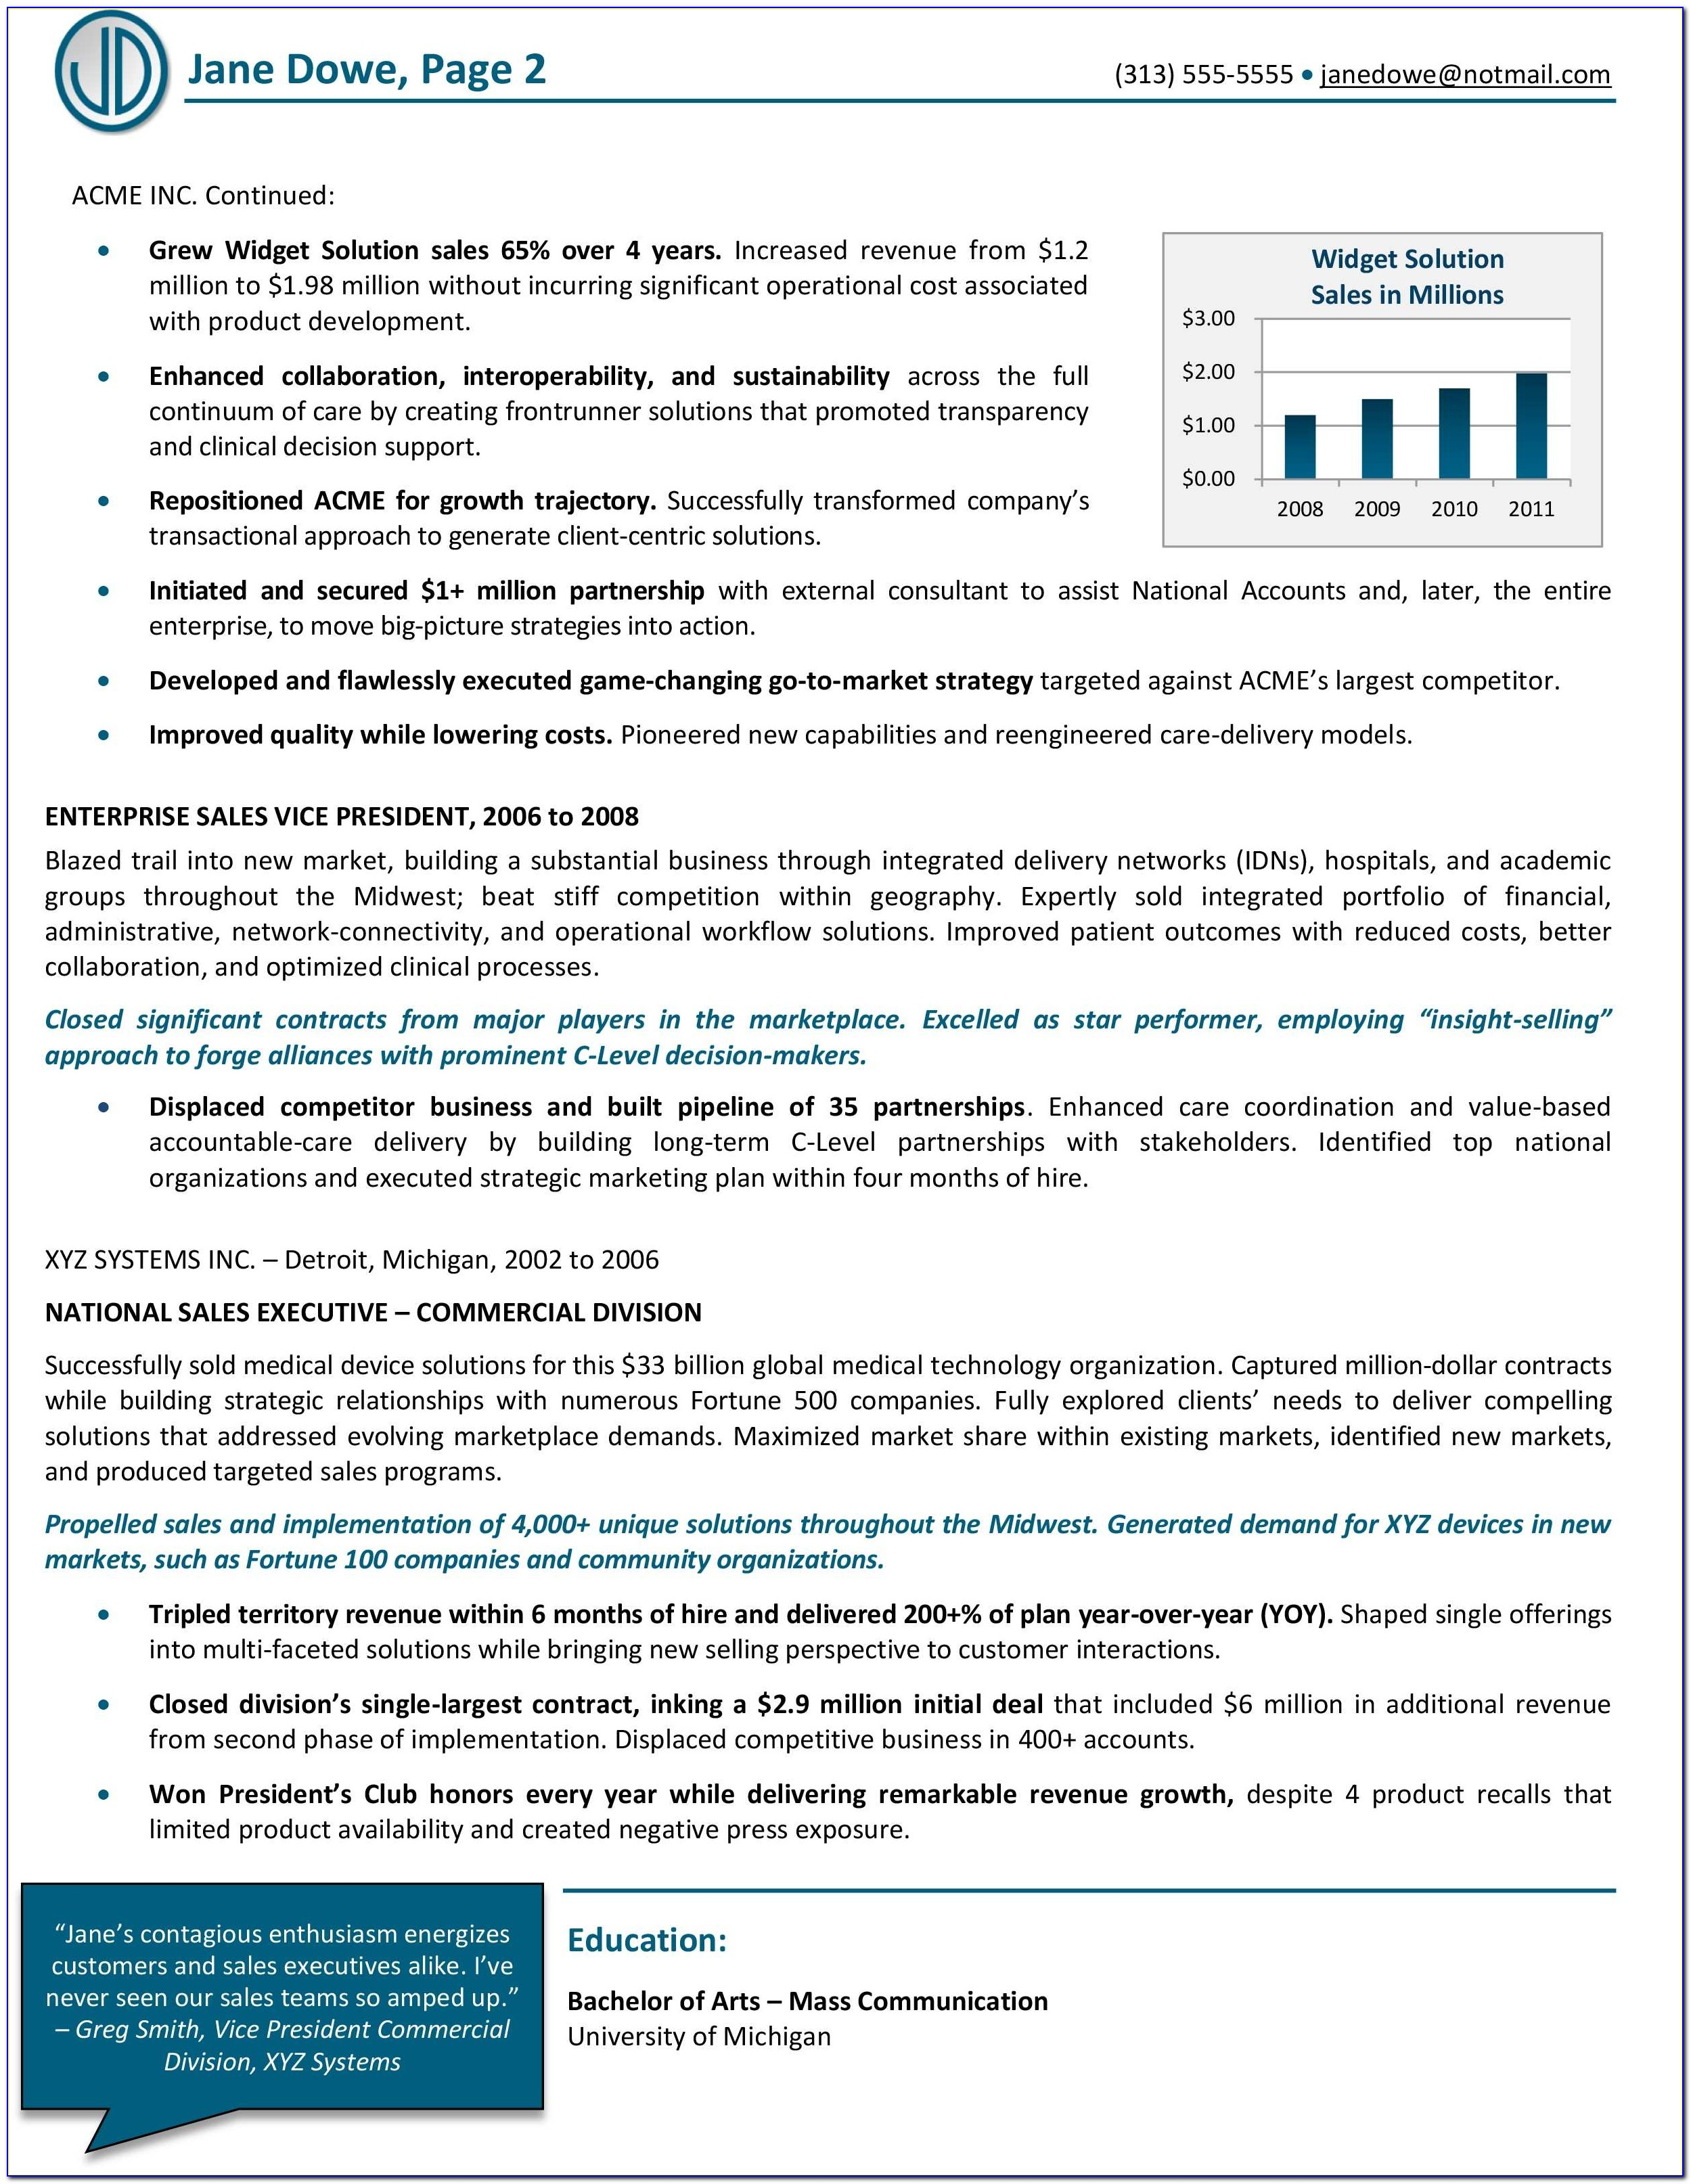 Graphic Resumes Professional Association Of Resume Writers And Career Coaches